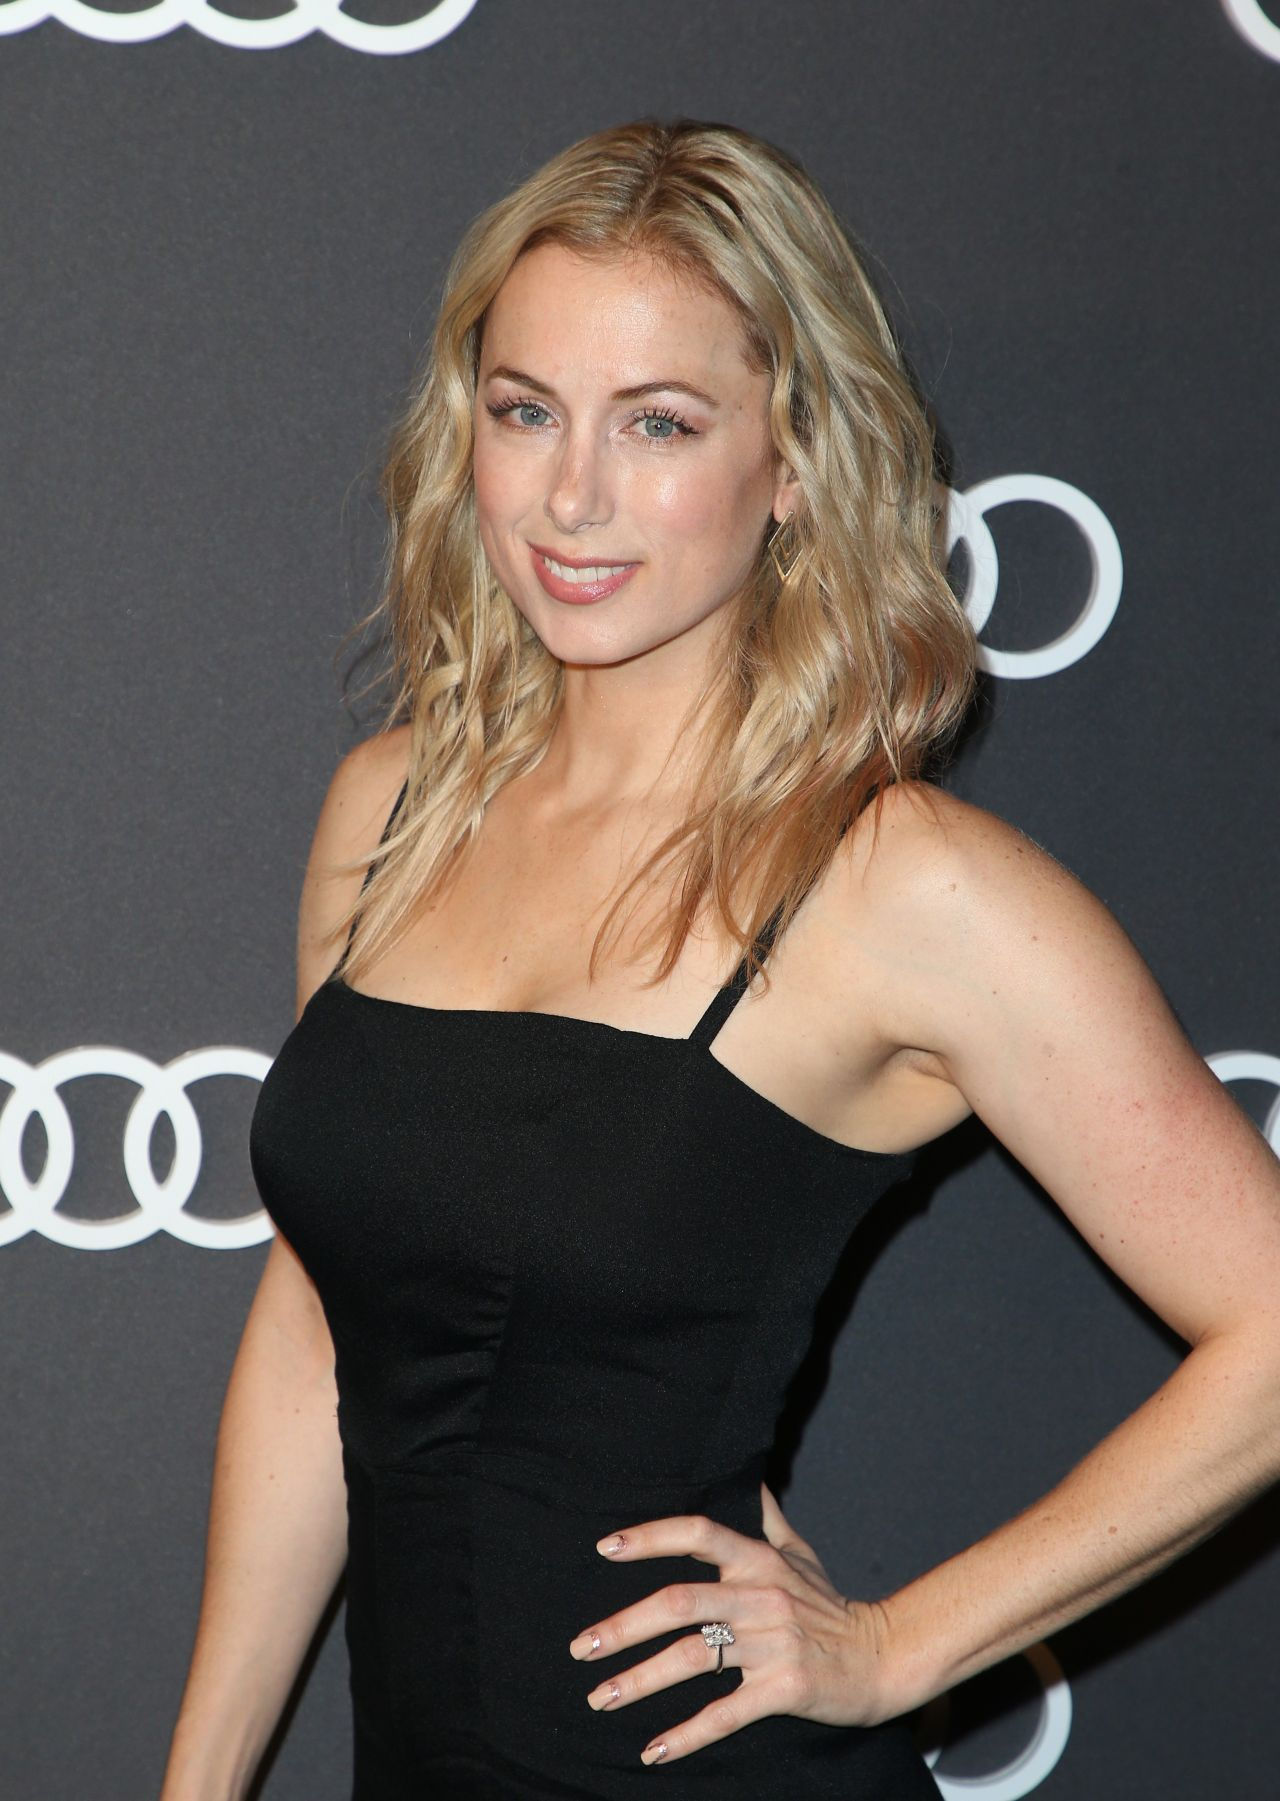 Pic Iliza Shlesinger nude (38 foto and video), Pussy, Cleavage, Twitter, butt 2017